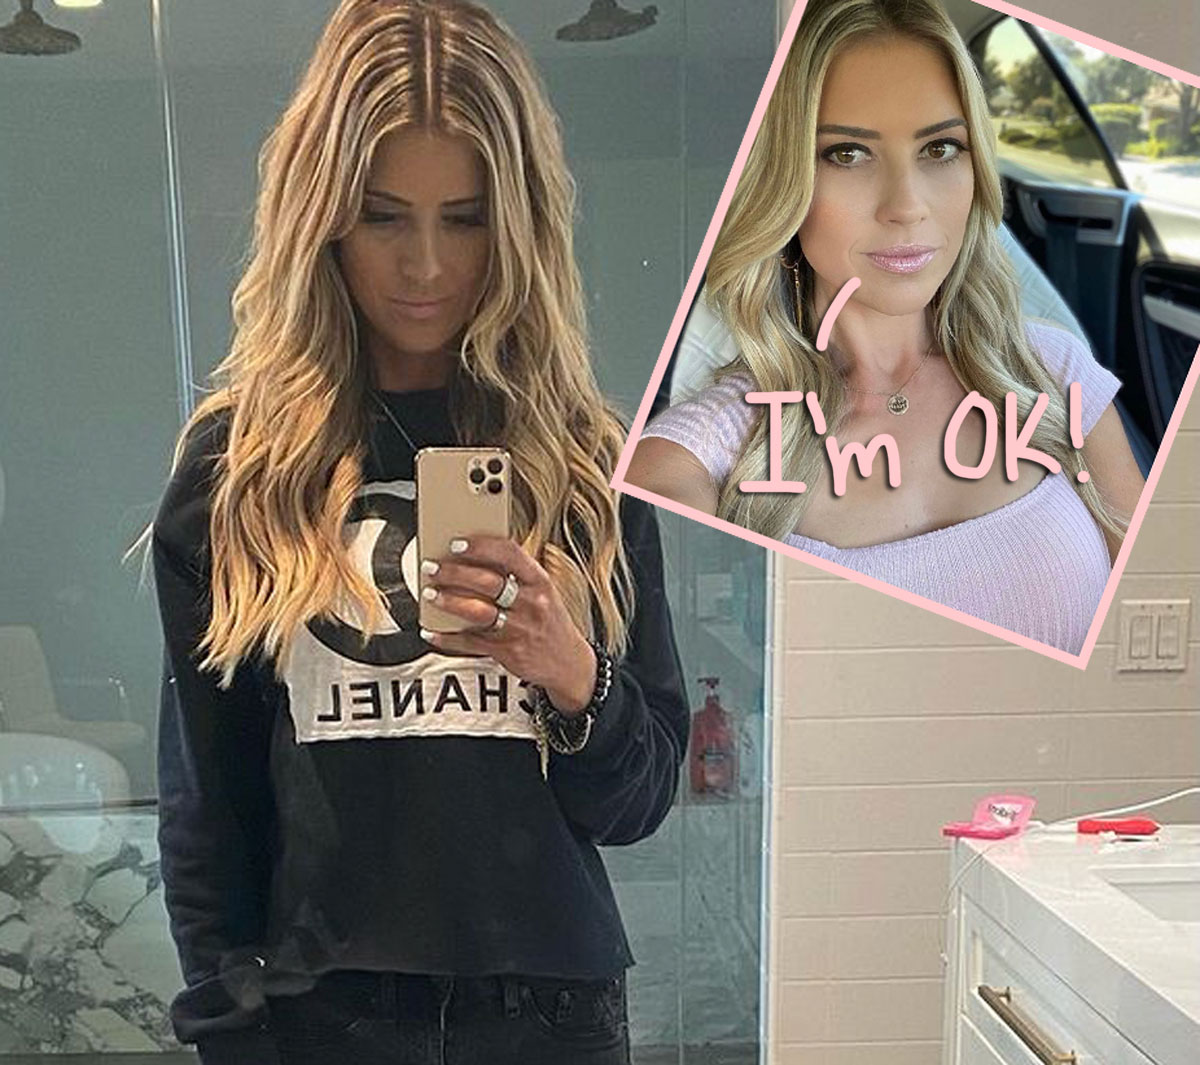 Christina Anstead Chastises Followers About Criticism Over Her Weight: 'Chill People'